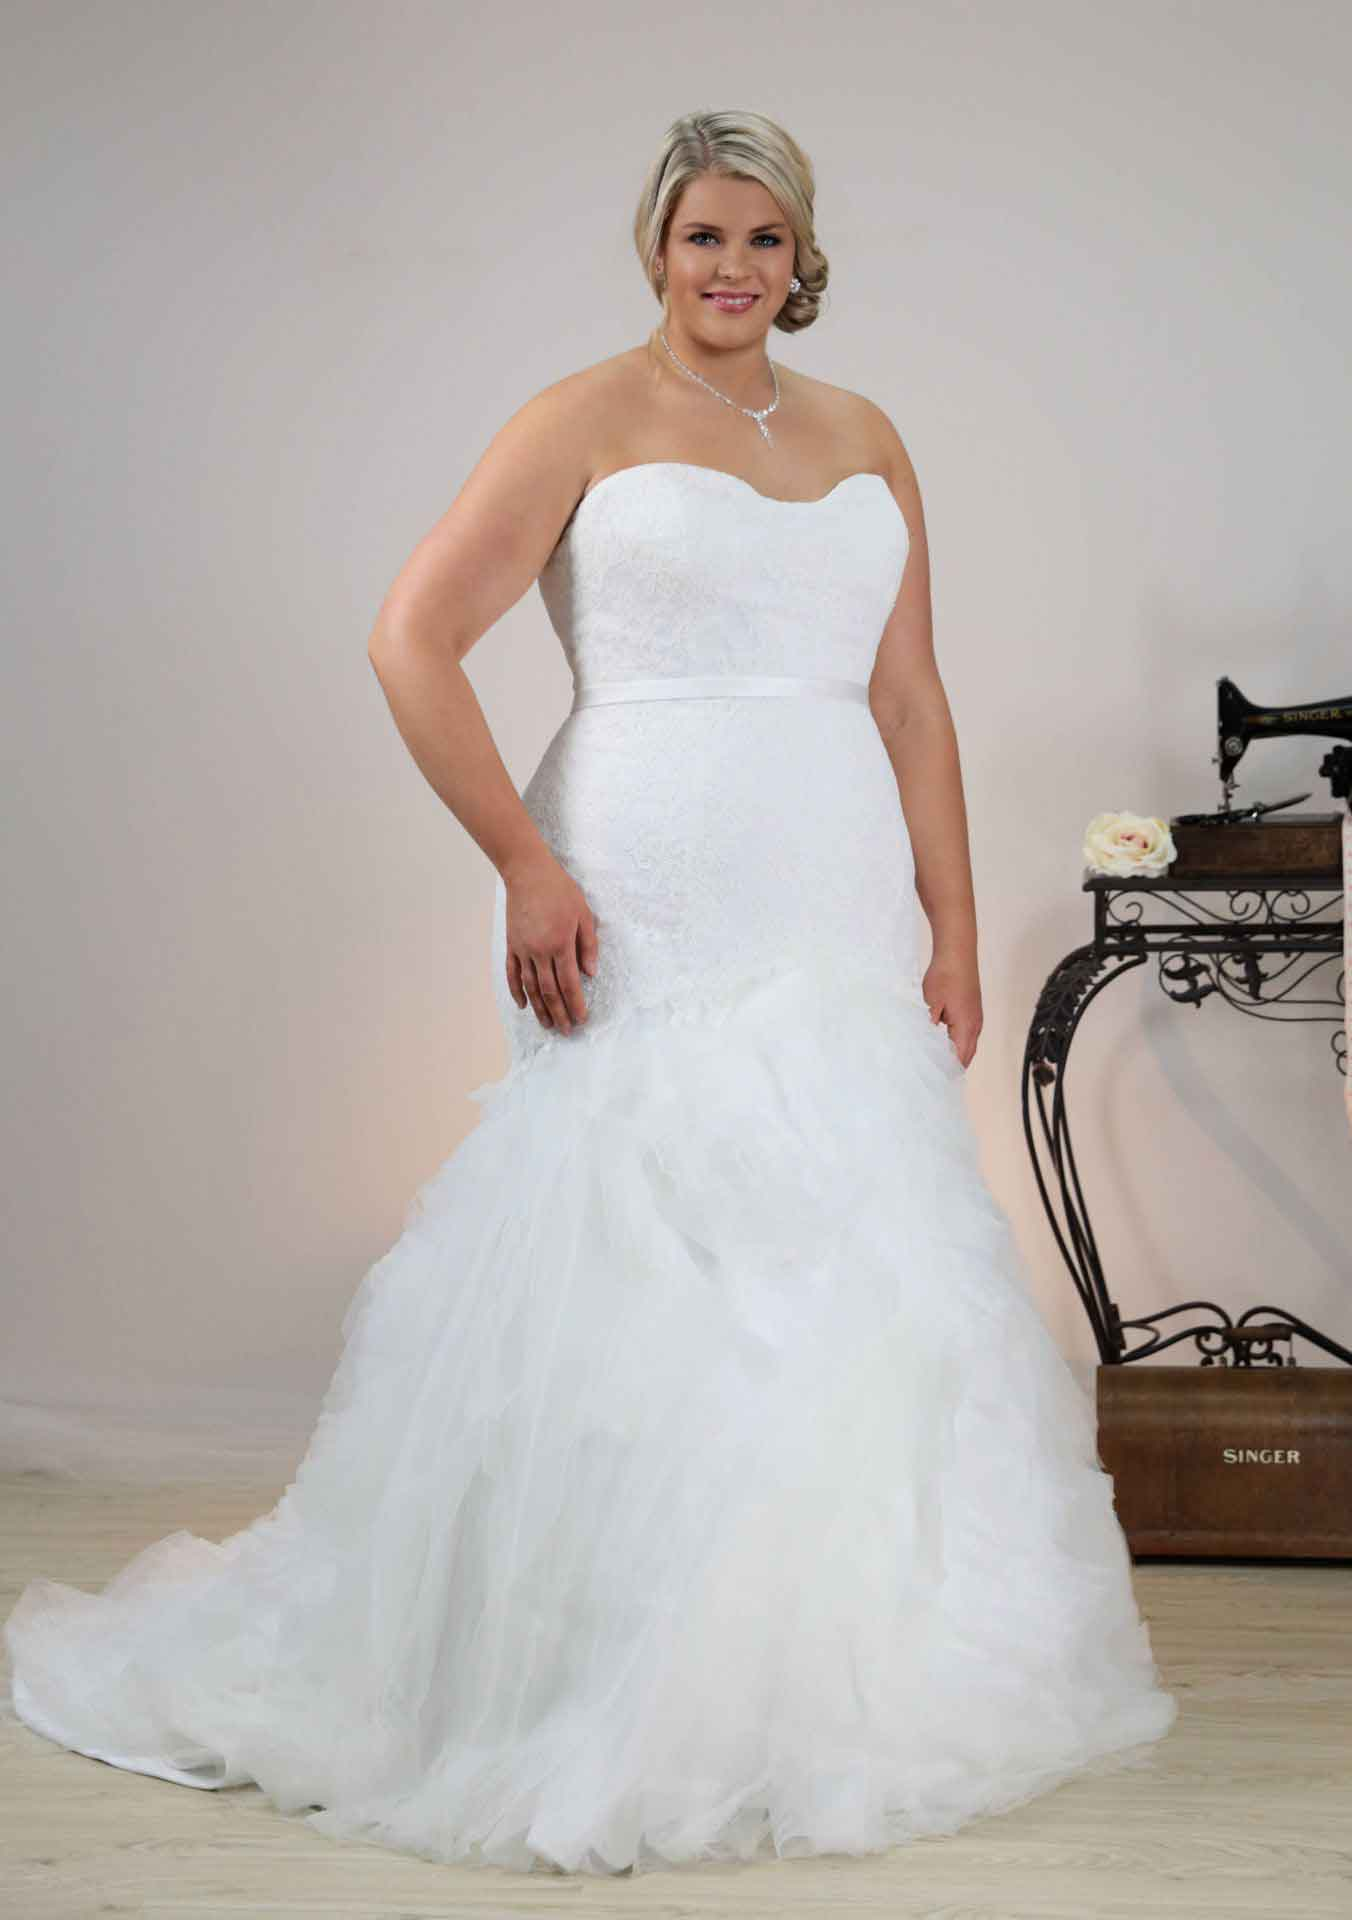 leah s designs Couture wedding dress